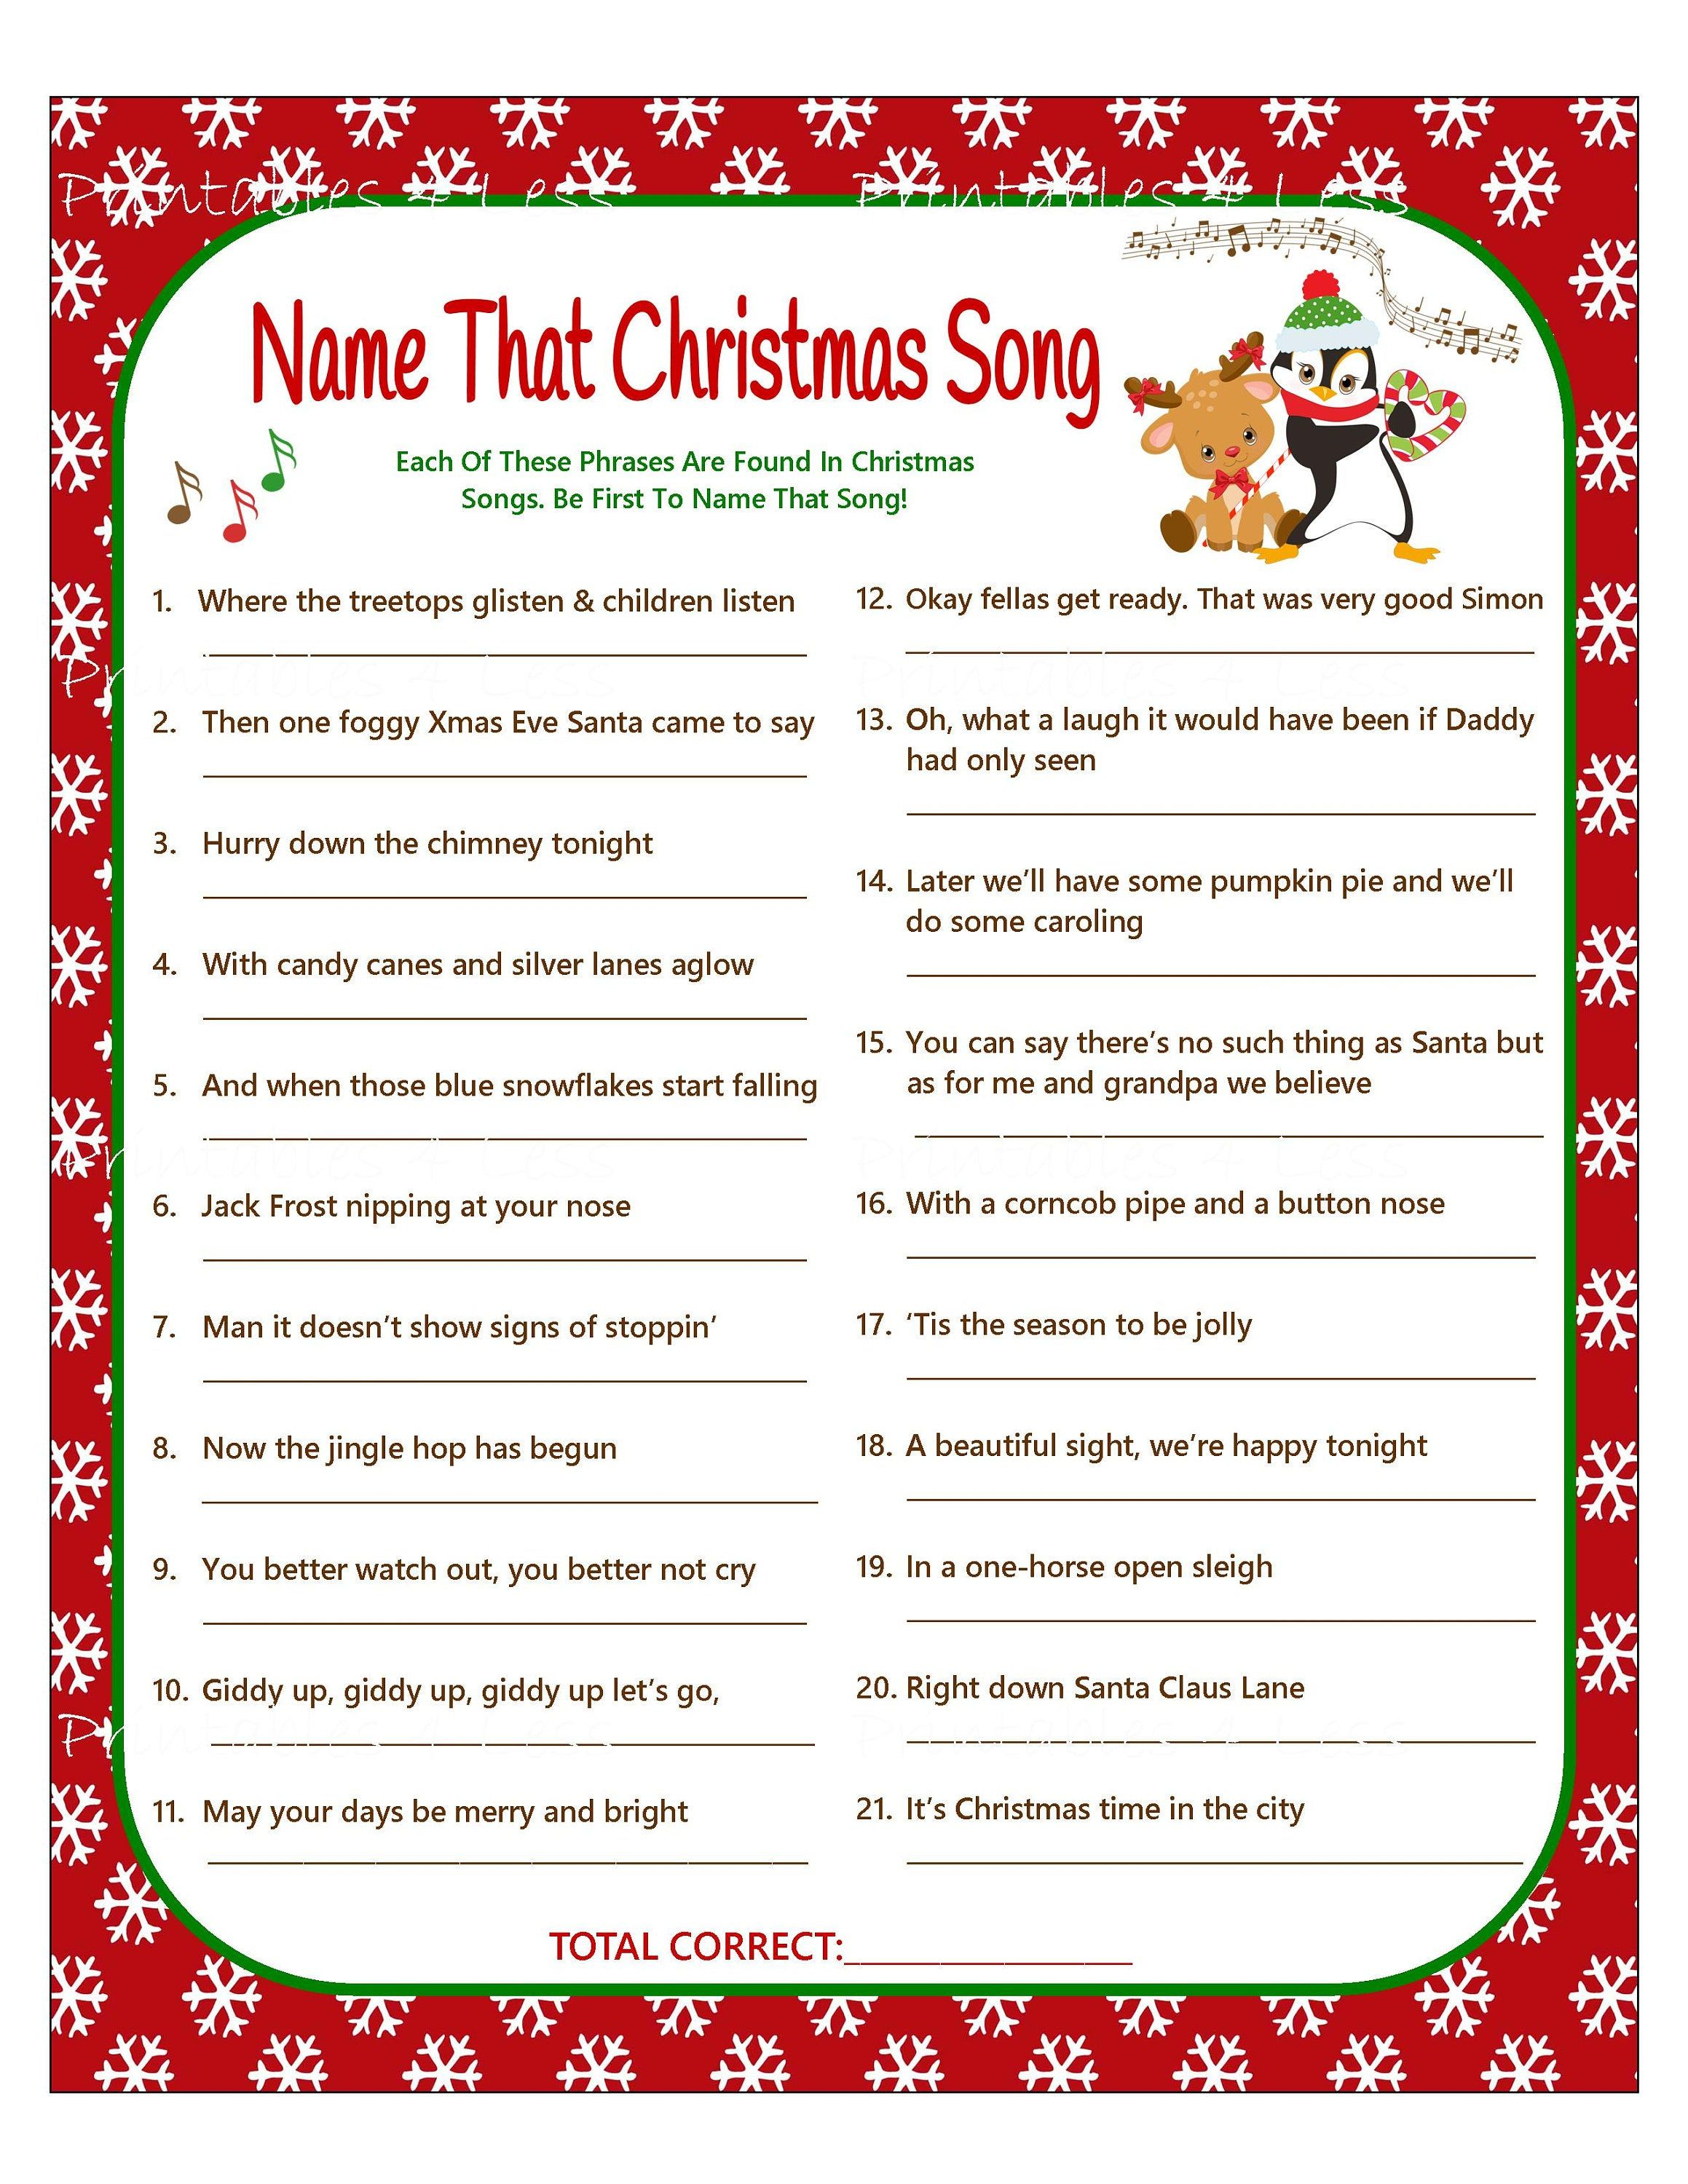 Christmas Carol Game Diy Christmas Song Game Christmas